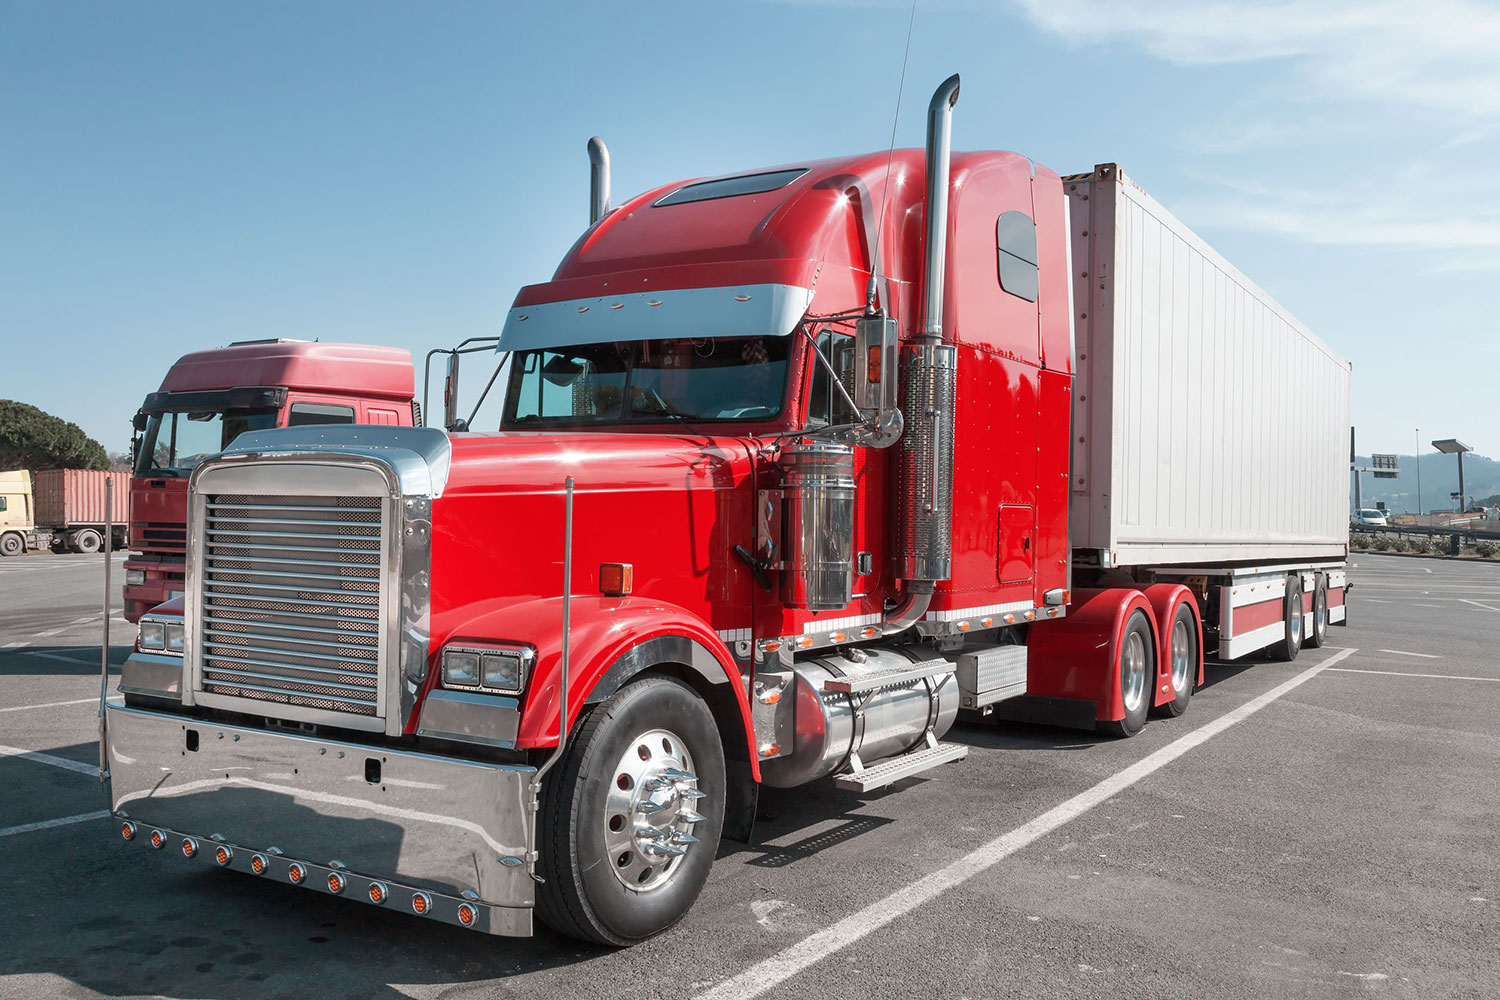 Sleeper For Pickup Truck >> Big truck hijacking vulnerability should be a wake-up call to trucking industry